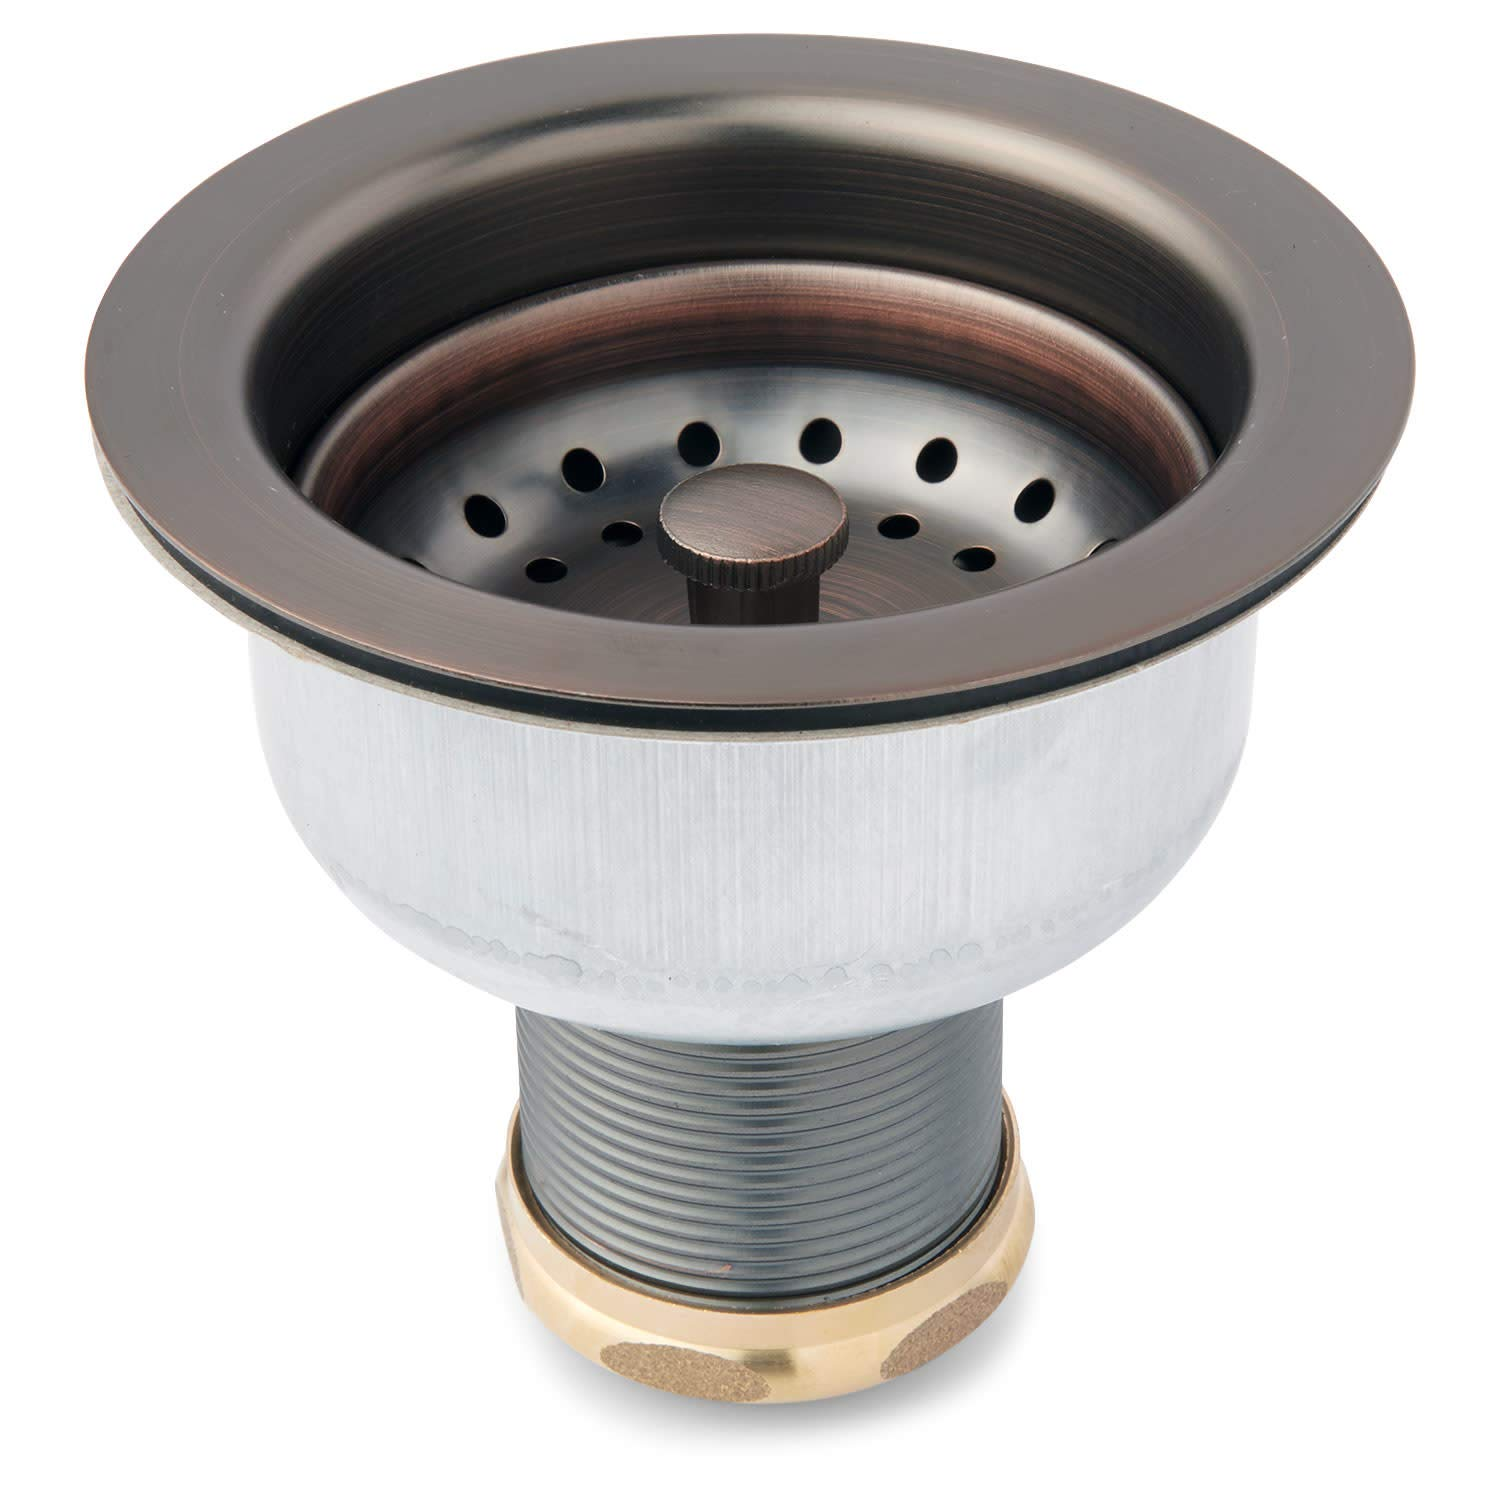 Signature Hardware 413855 3-1/2'' Basket Strainer with Sink Flange for Sinks up to 1'' Thick - Set of Two